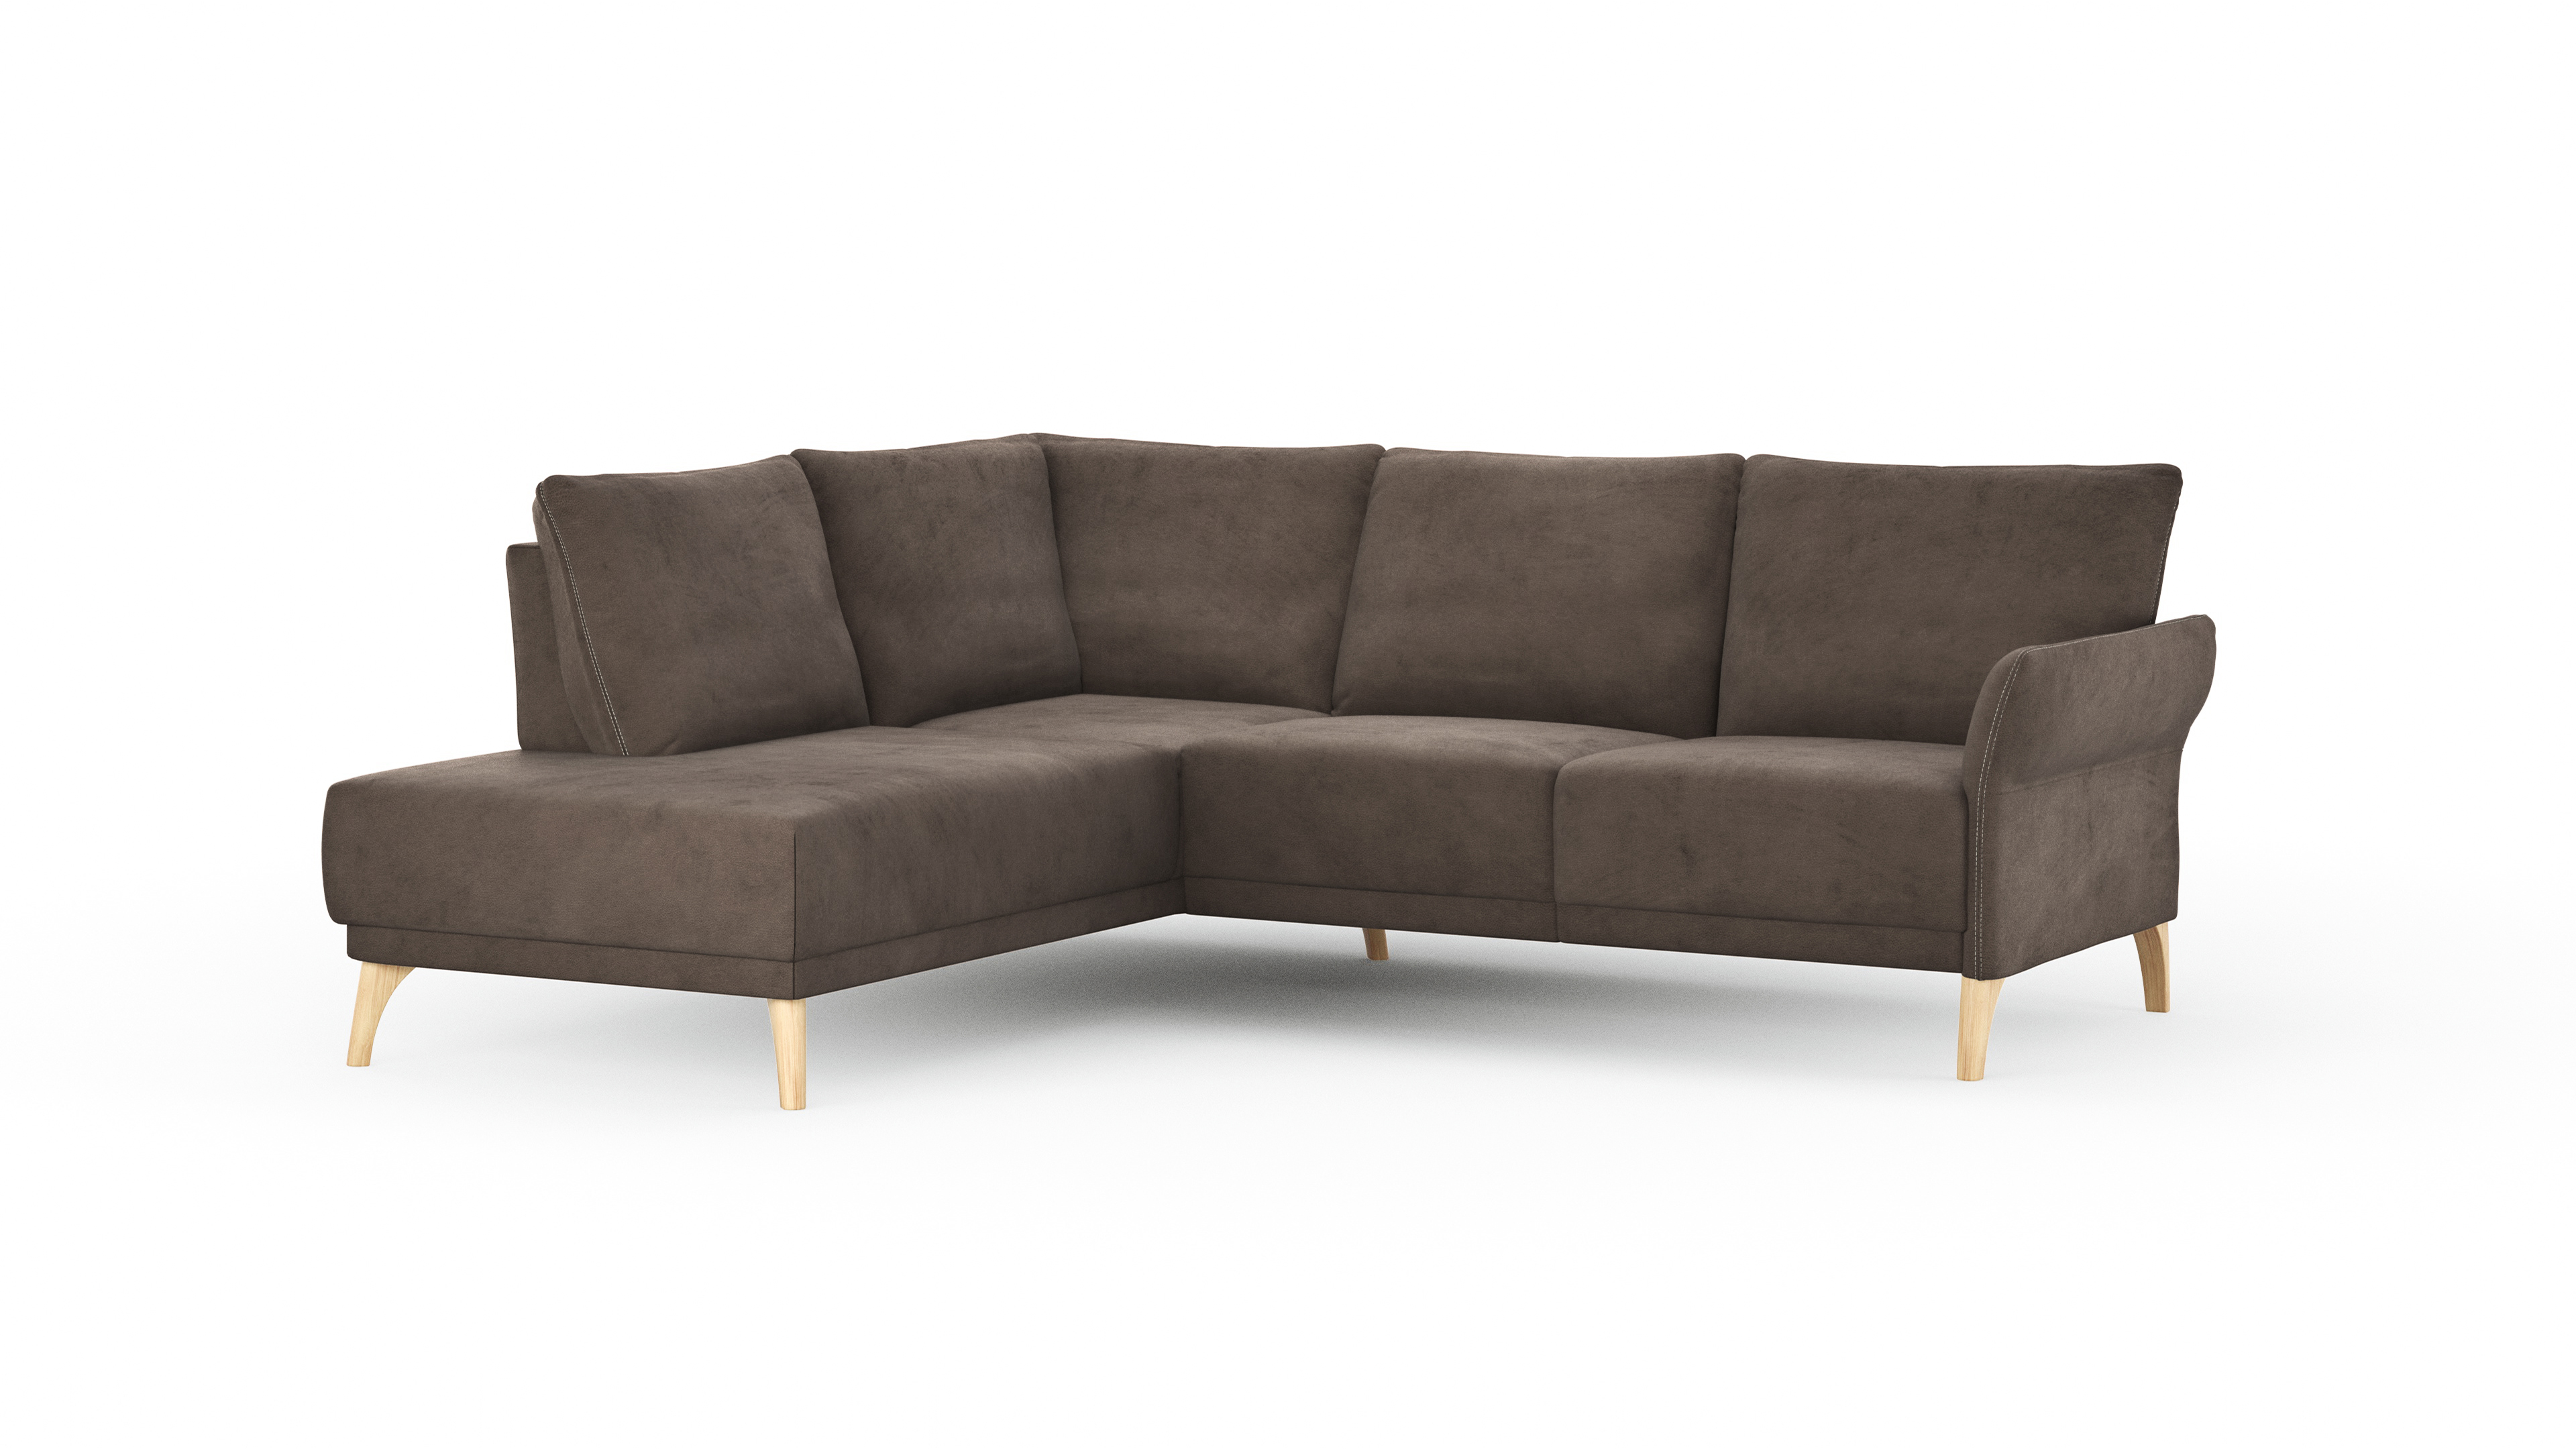 Global Comfort Ecksofa Rosario freisteller 1 102533 | Homepoet